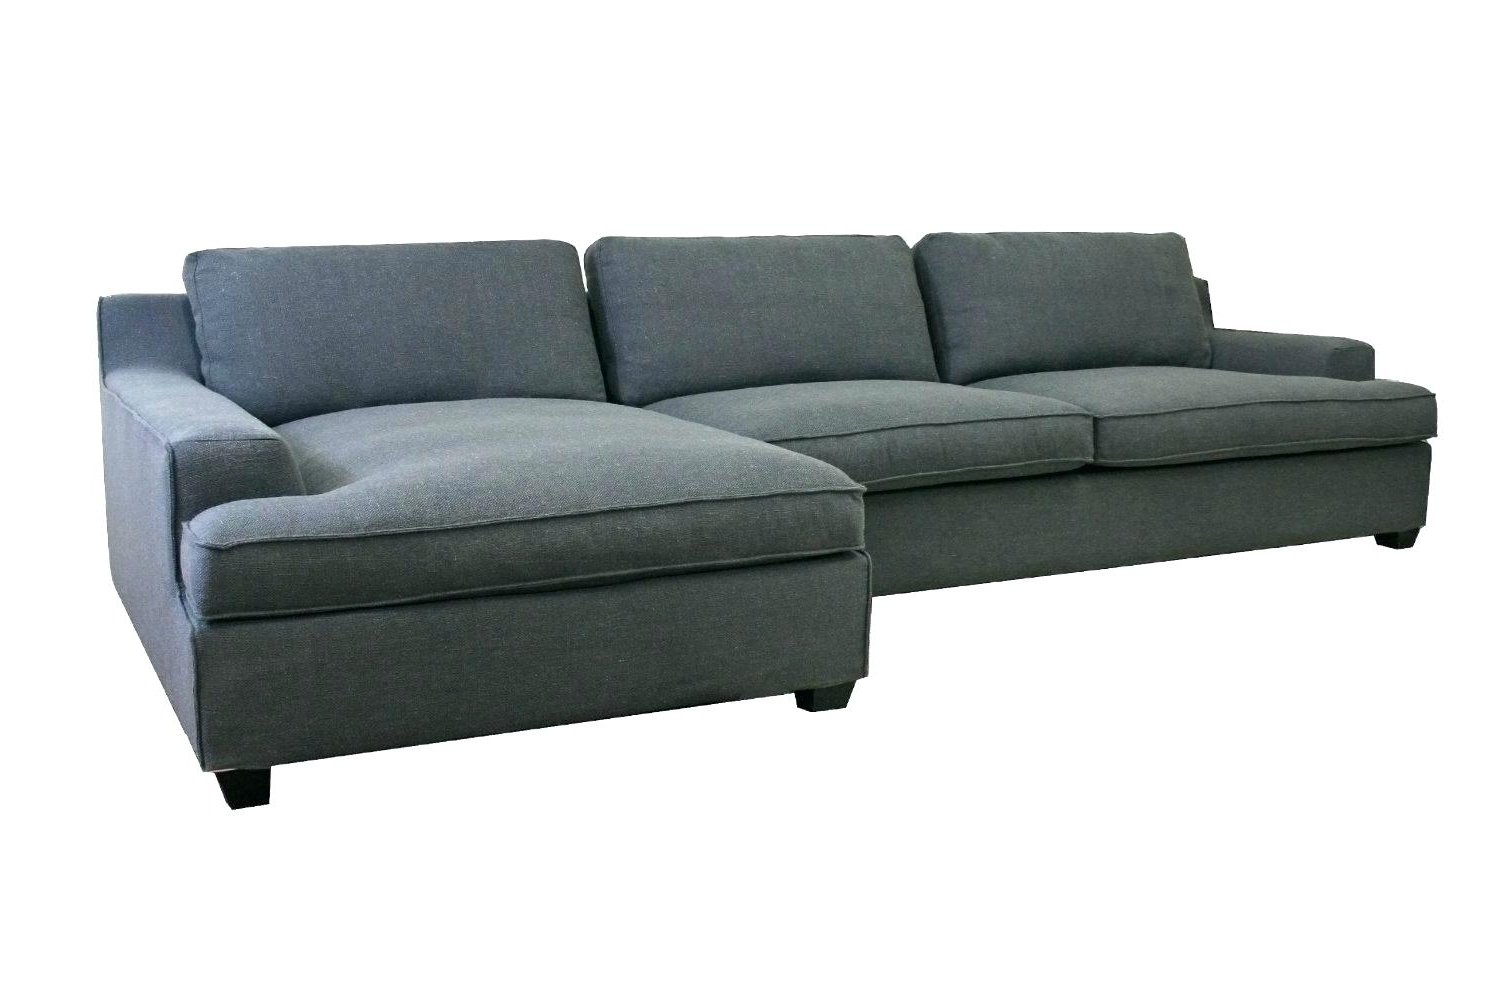 Popular Orange County Sofas Pertaining To Lounge Furniture Rentals Orange County Couch For Sale Sofa Bed (View 12 of 15)